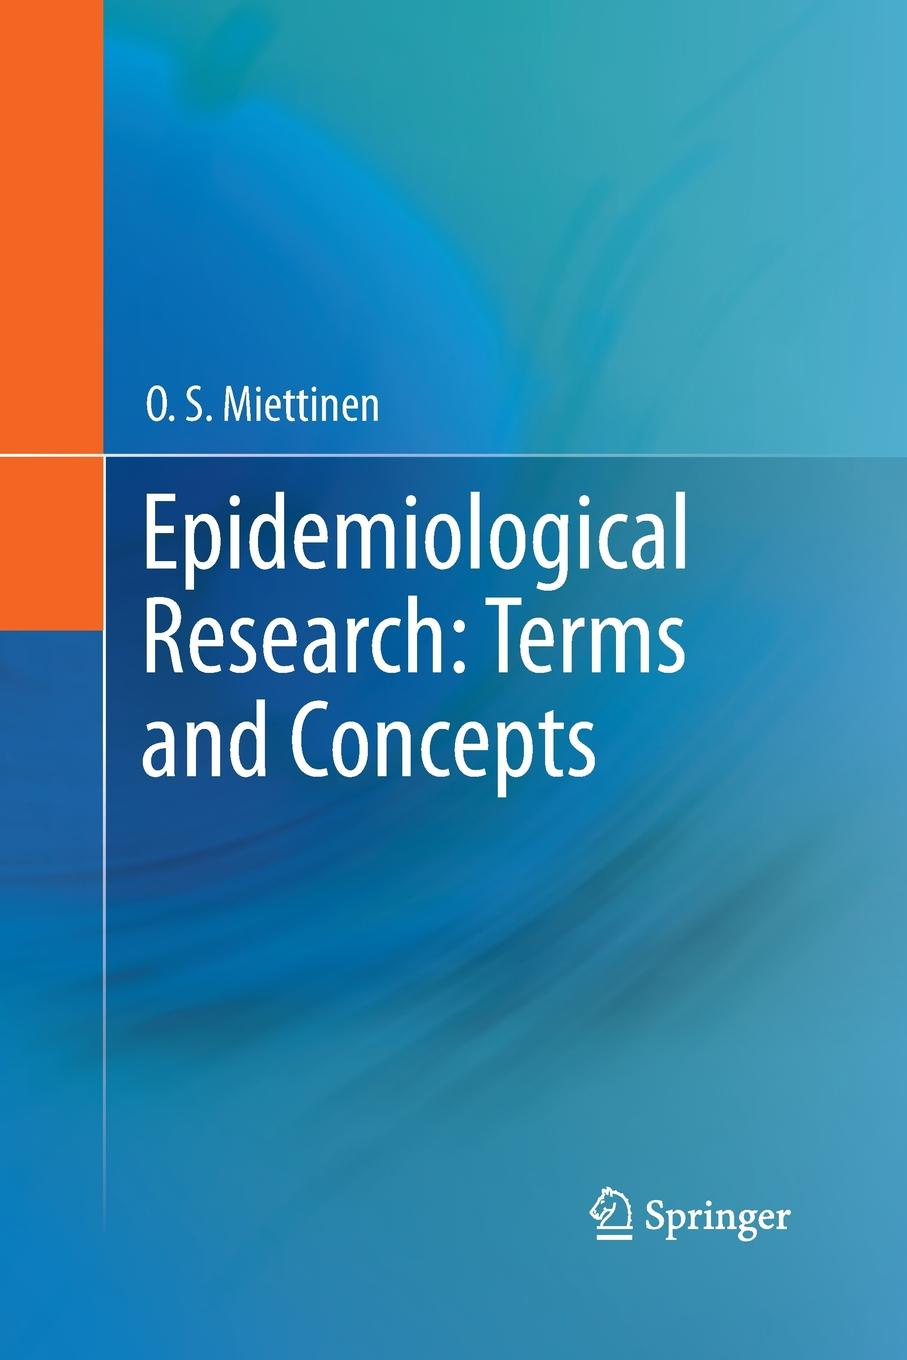 купить O. S. Miettinen Epidemiological Research. Terms and Concepts по цене 9464 рублей